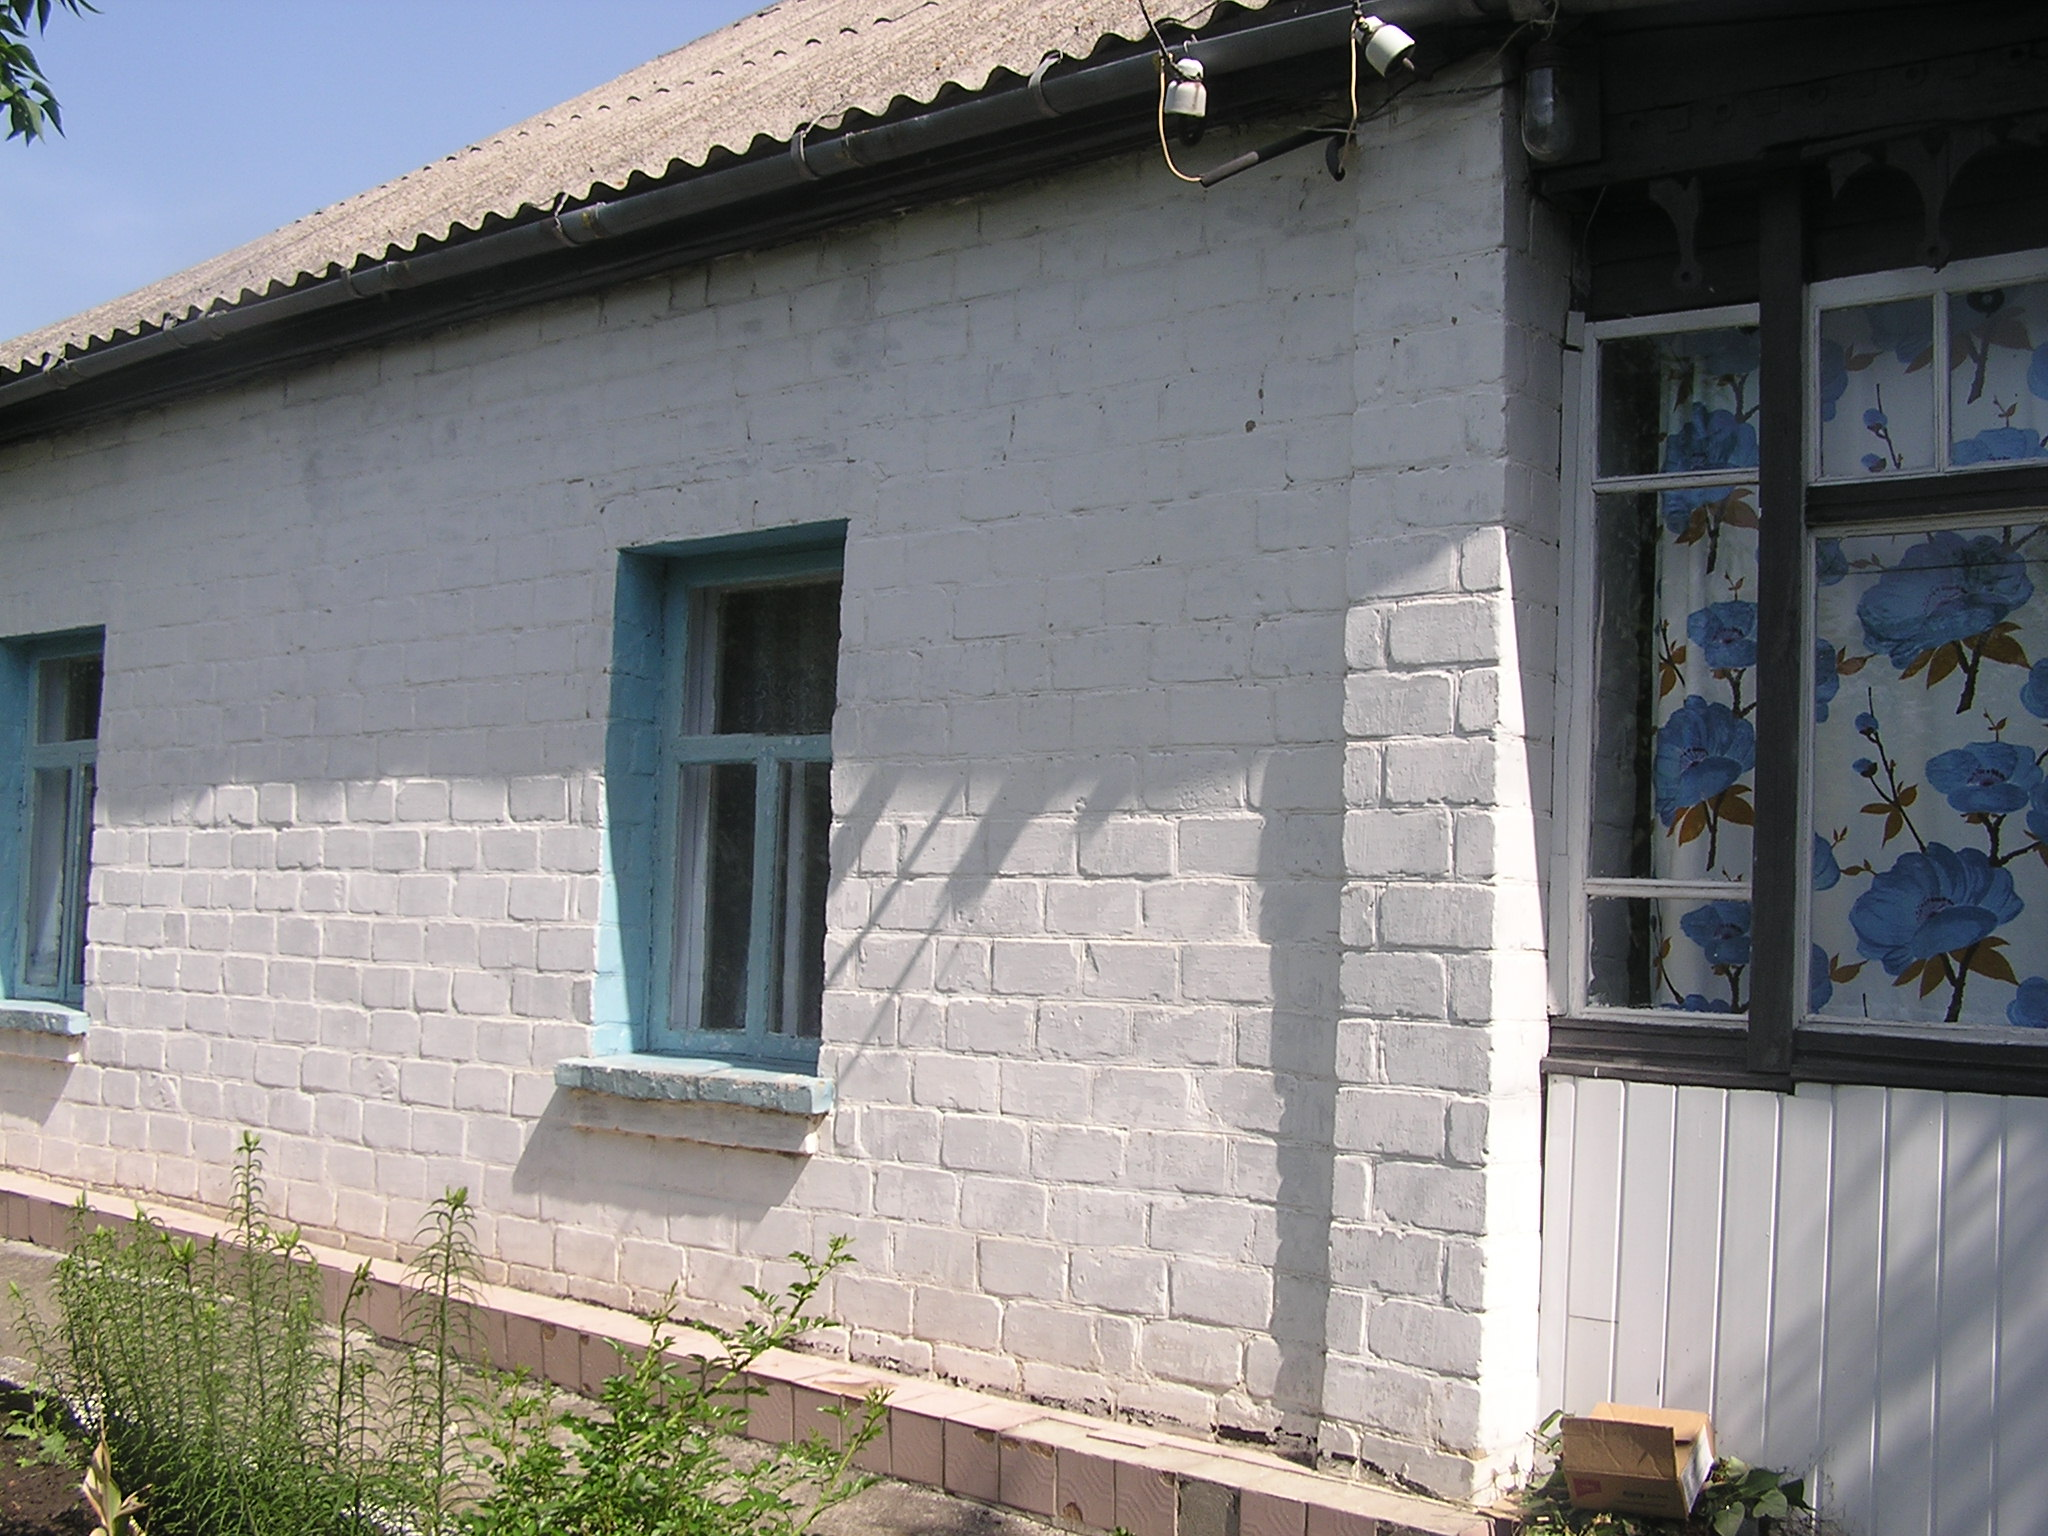 Korsun. House aged from mid-19th century similar to those where the Gnoyenskys lived. Year 2007-2011.